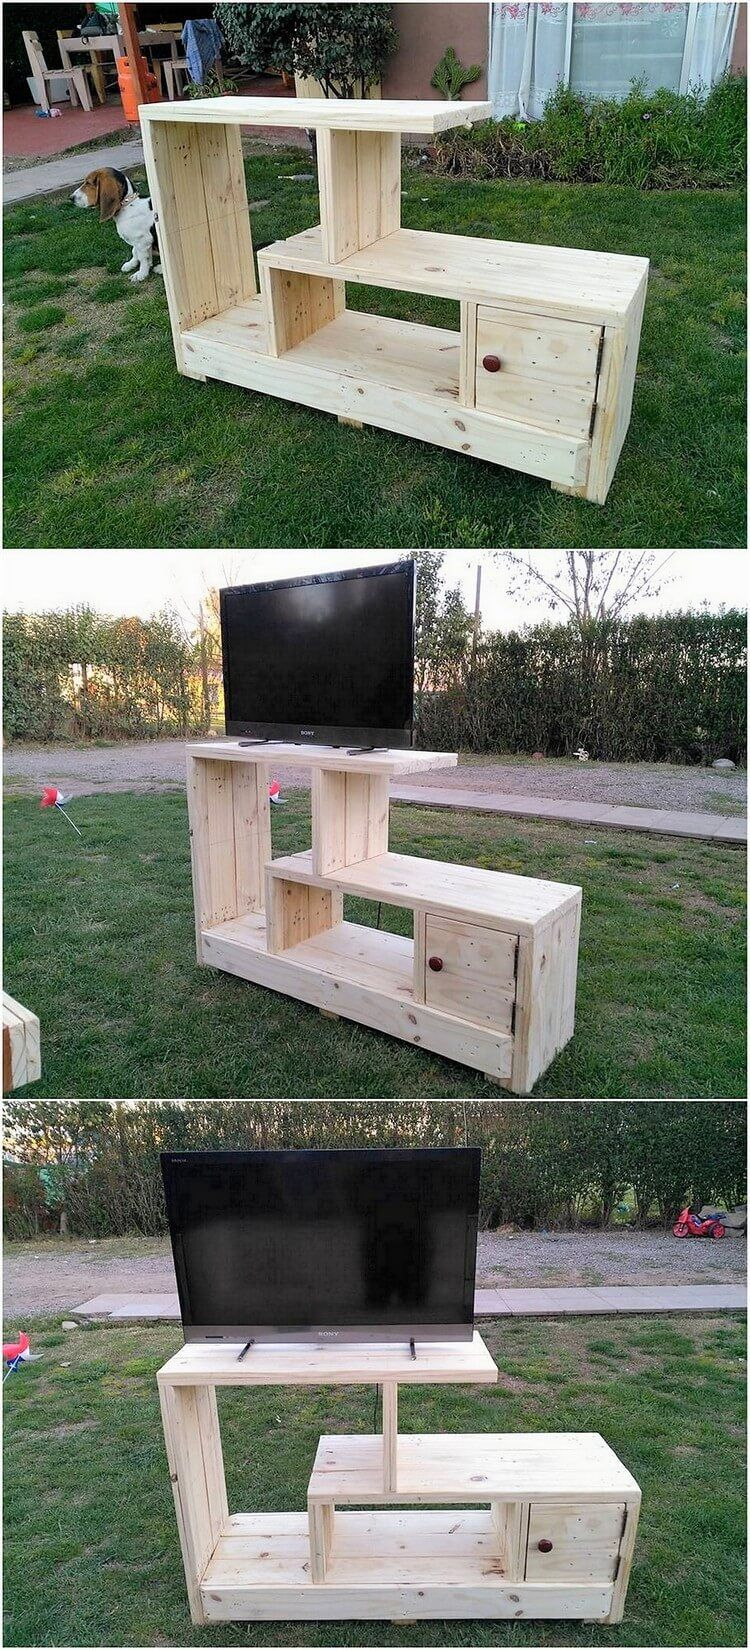 Give A Look At This Excellent Creation Of The Media Table TV Stand Furniture  Design Where